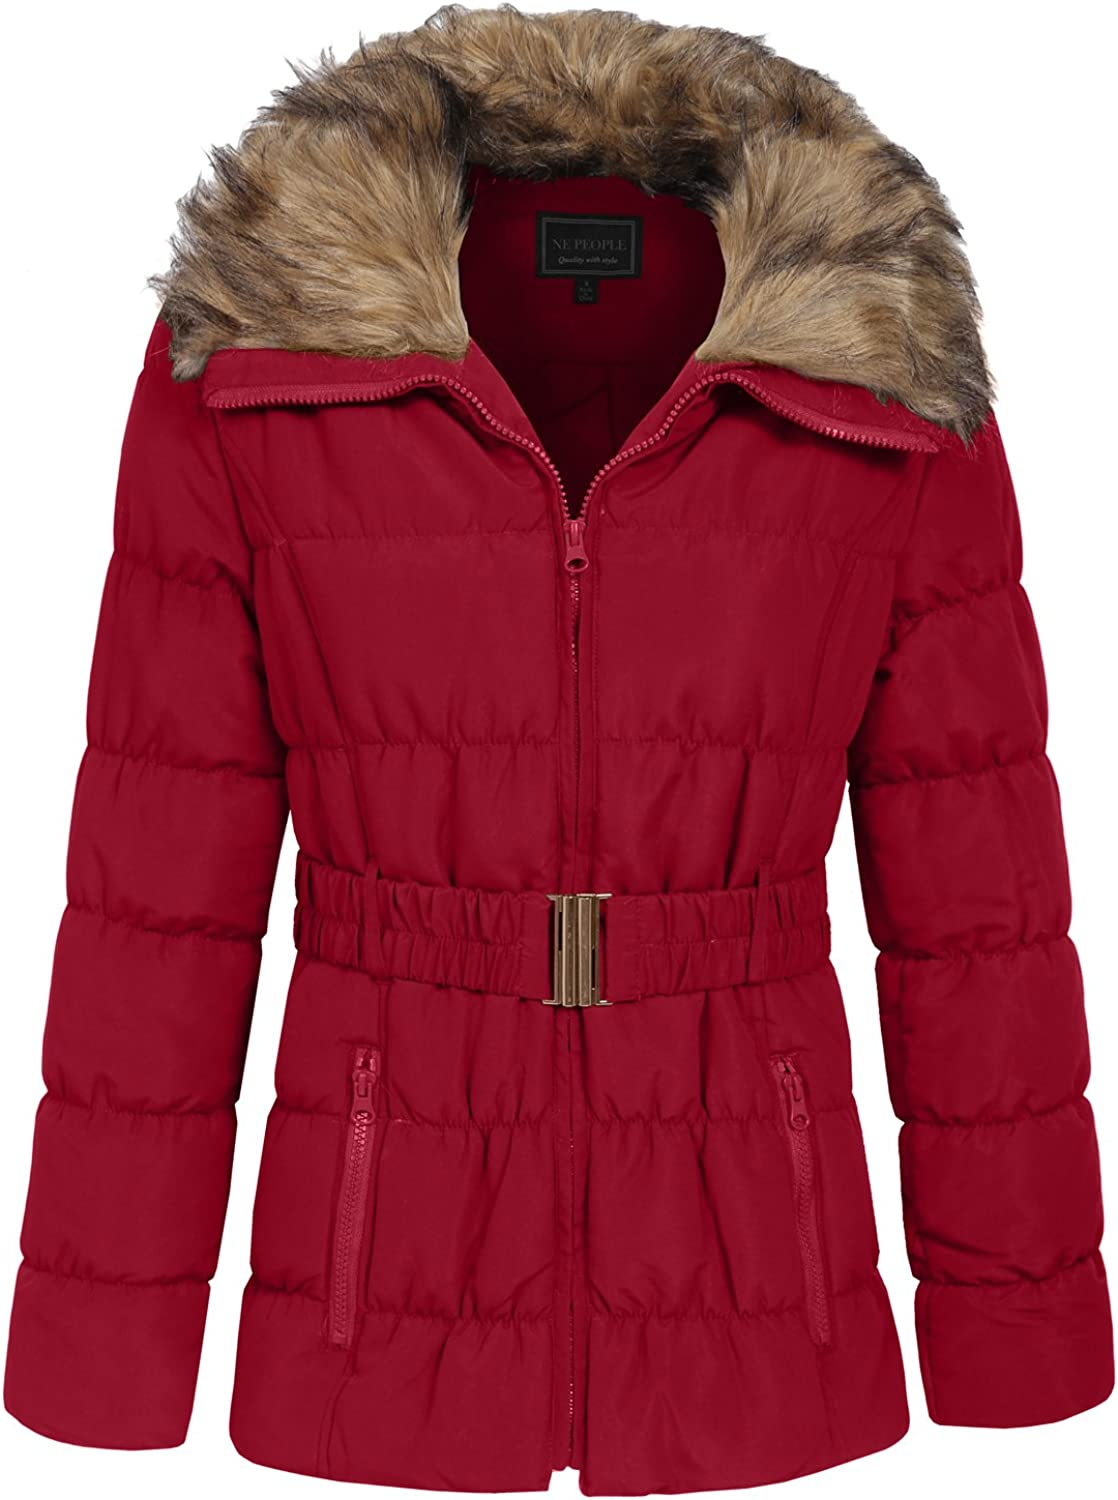 NE PEOPLE Womens Quilted Light Weight Fur Padding Jacket/Vest S-3XL